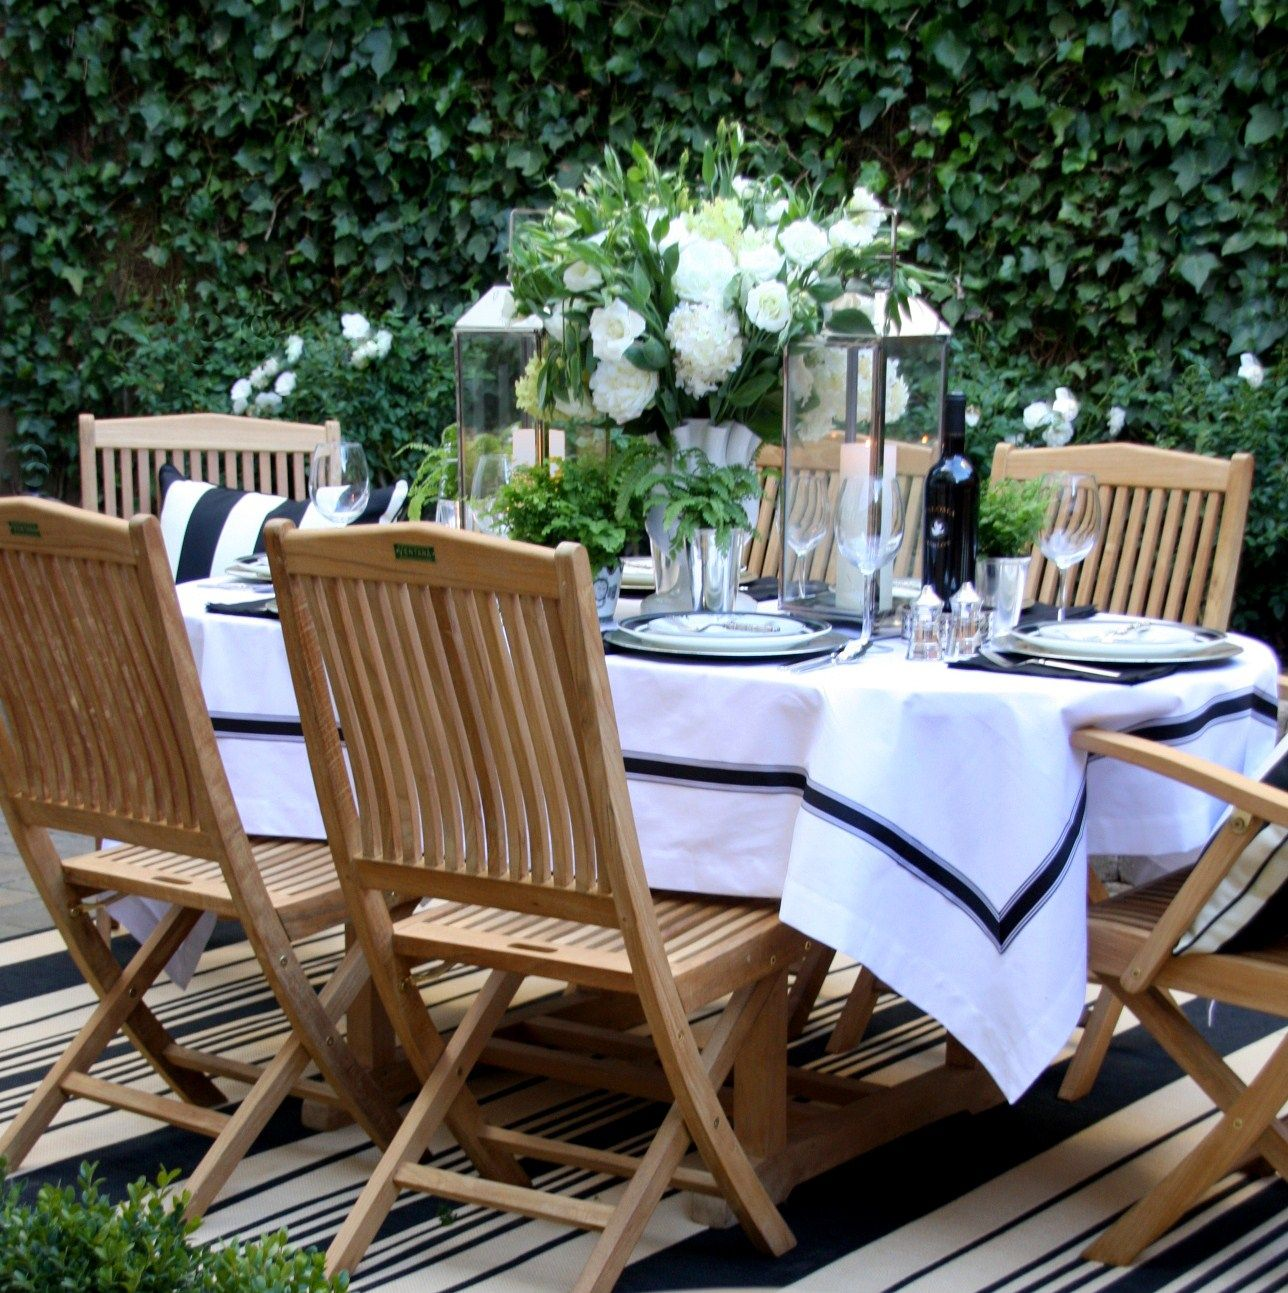 What A Pretty Table Setting Patio Entertaining Outdoor Dining